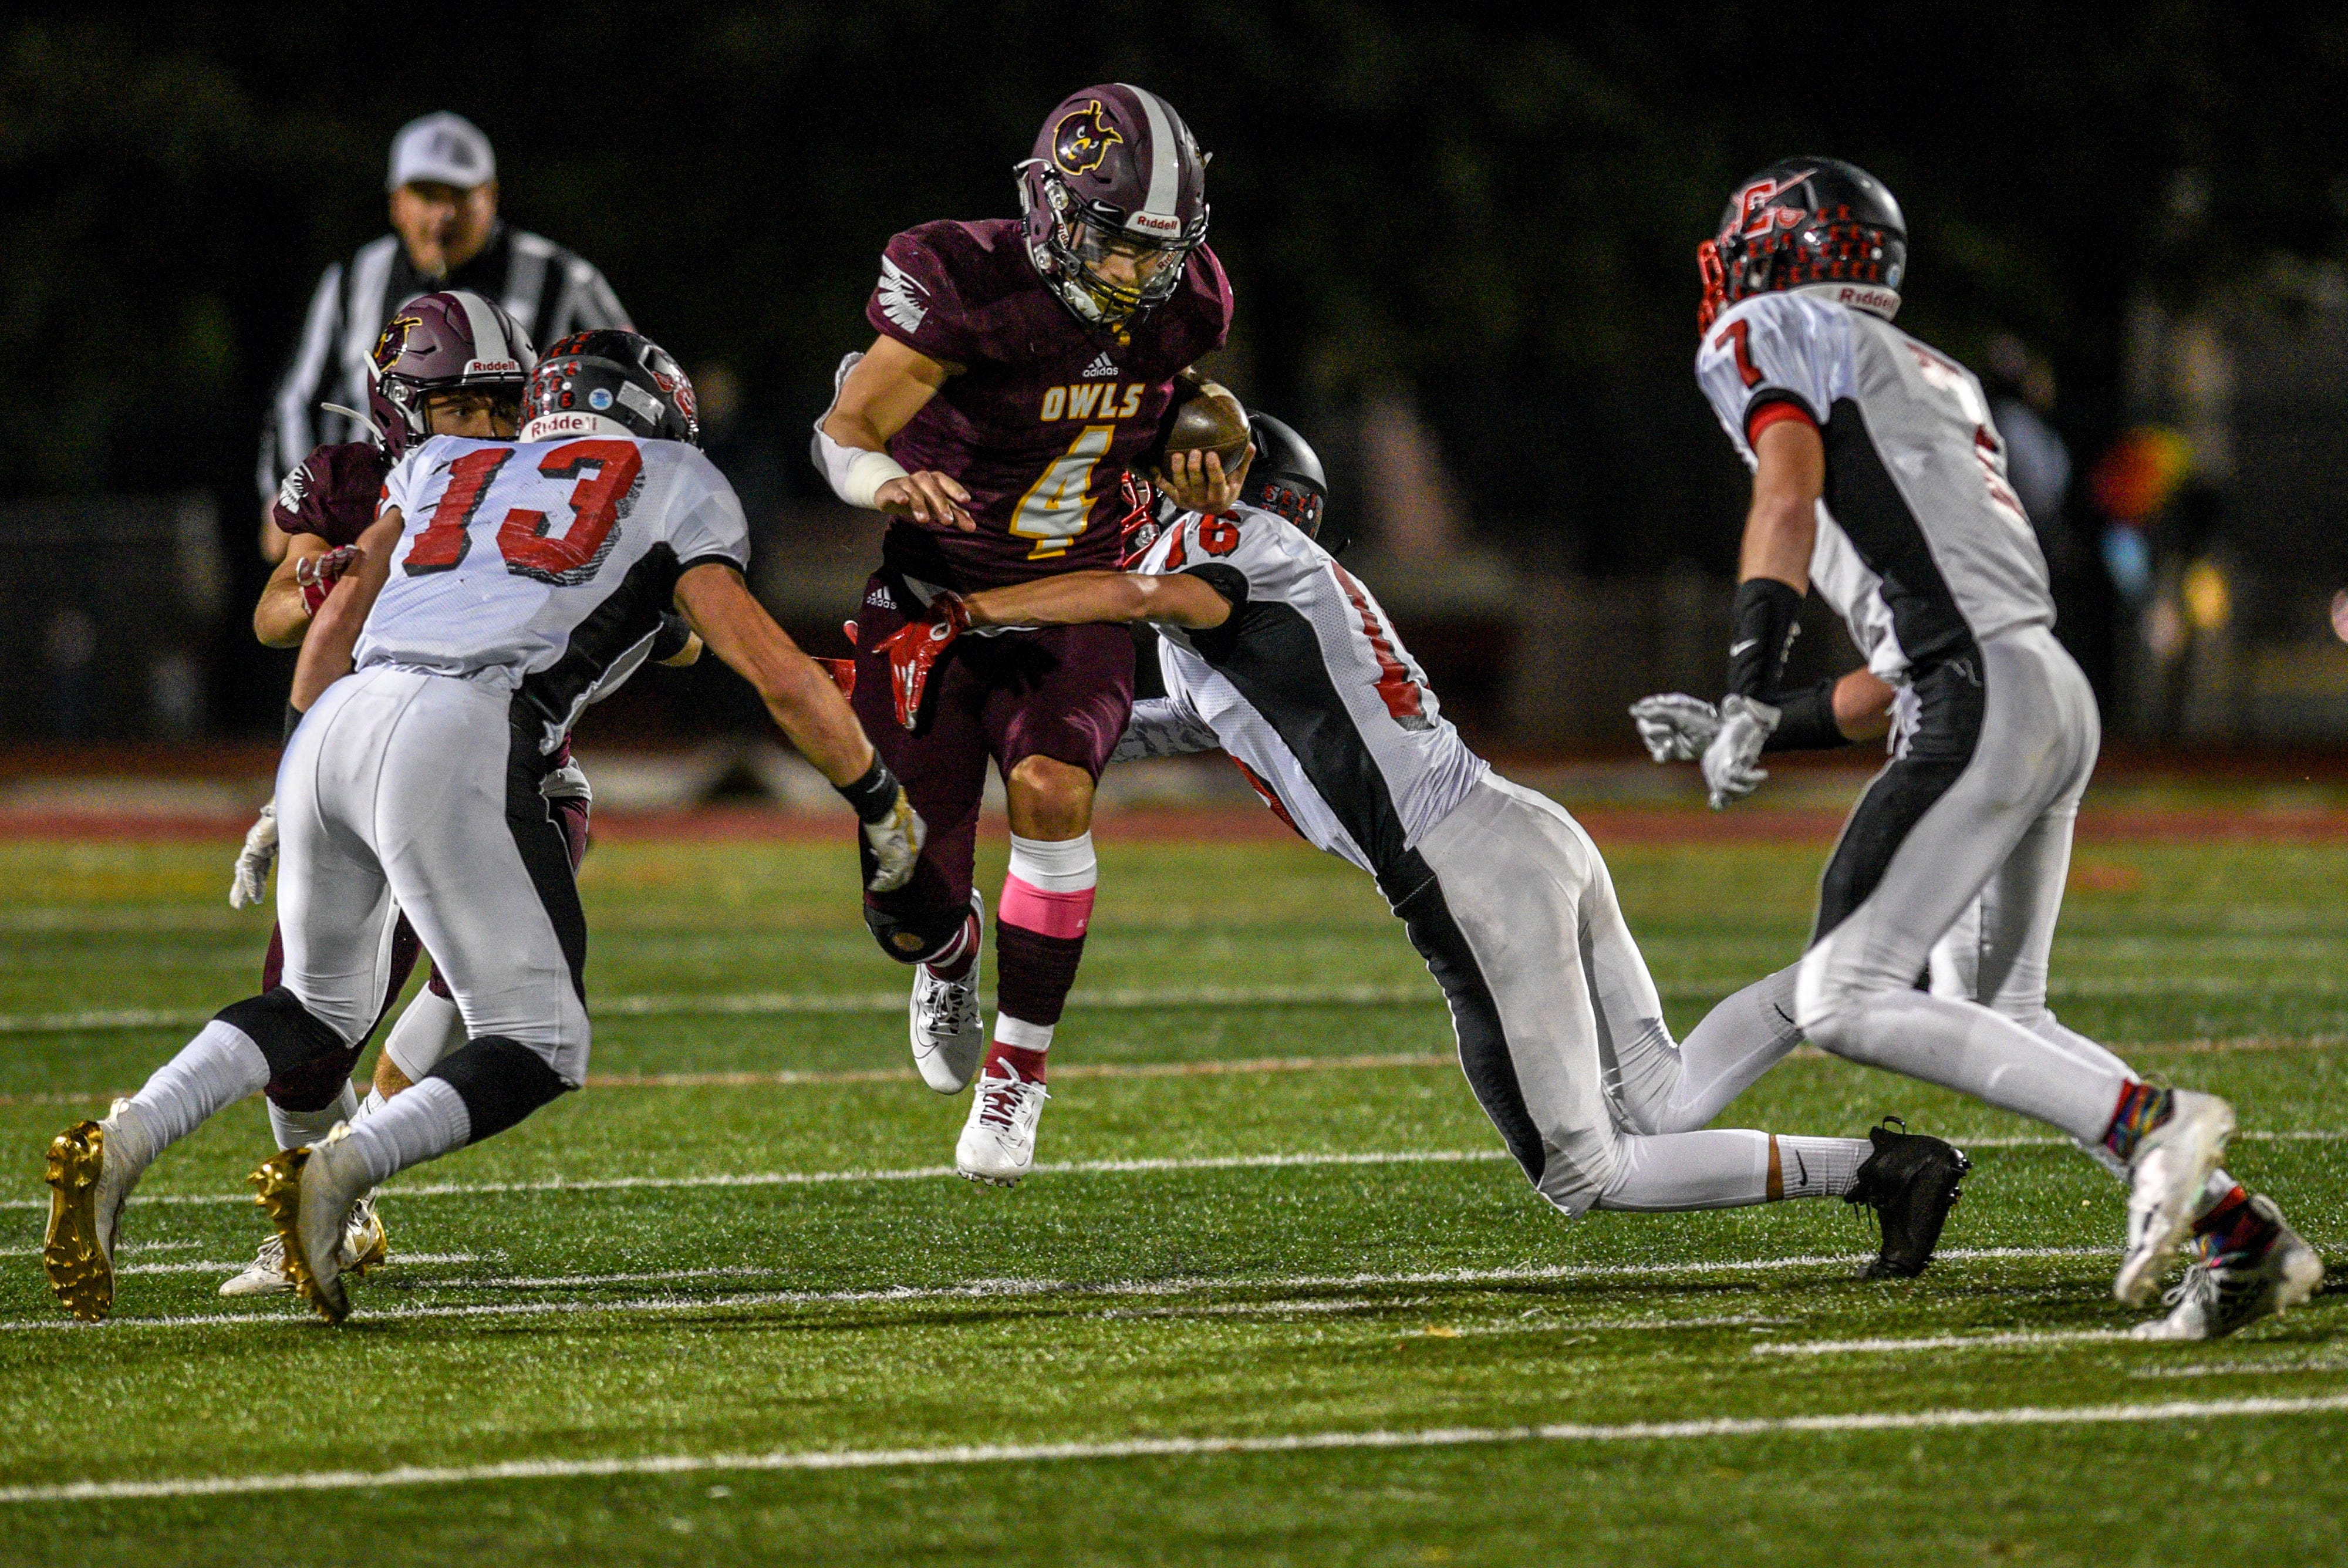 Park Ridge football tops Emerson to clinch division title